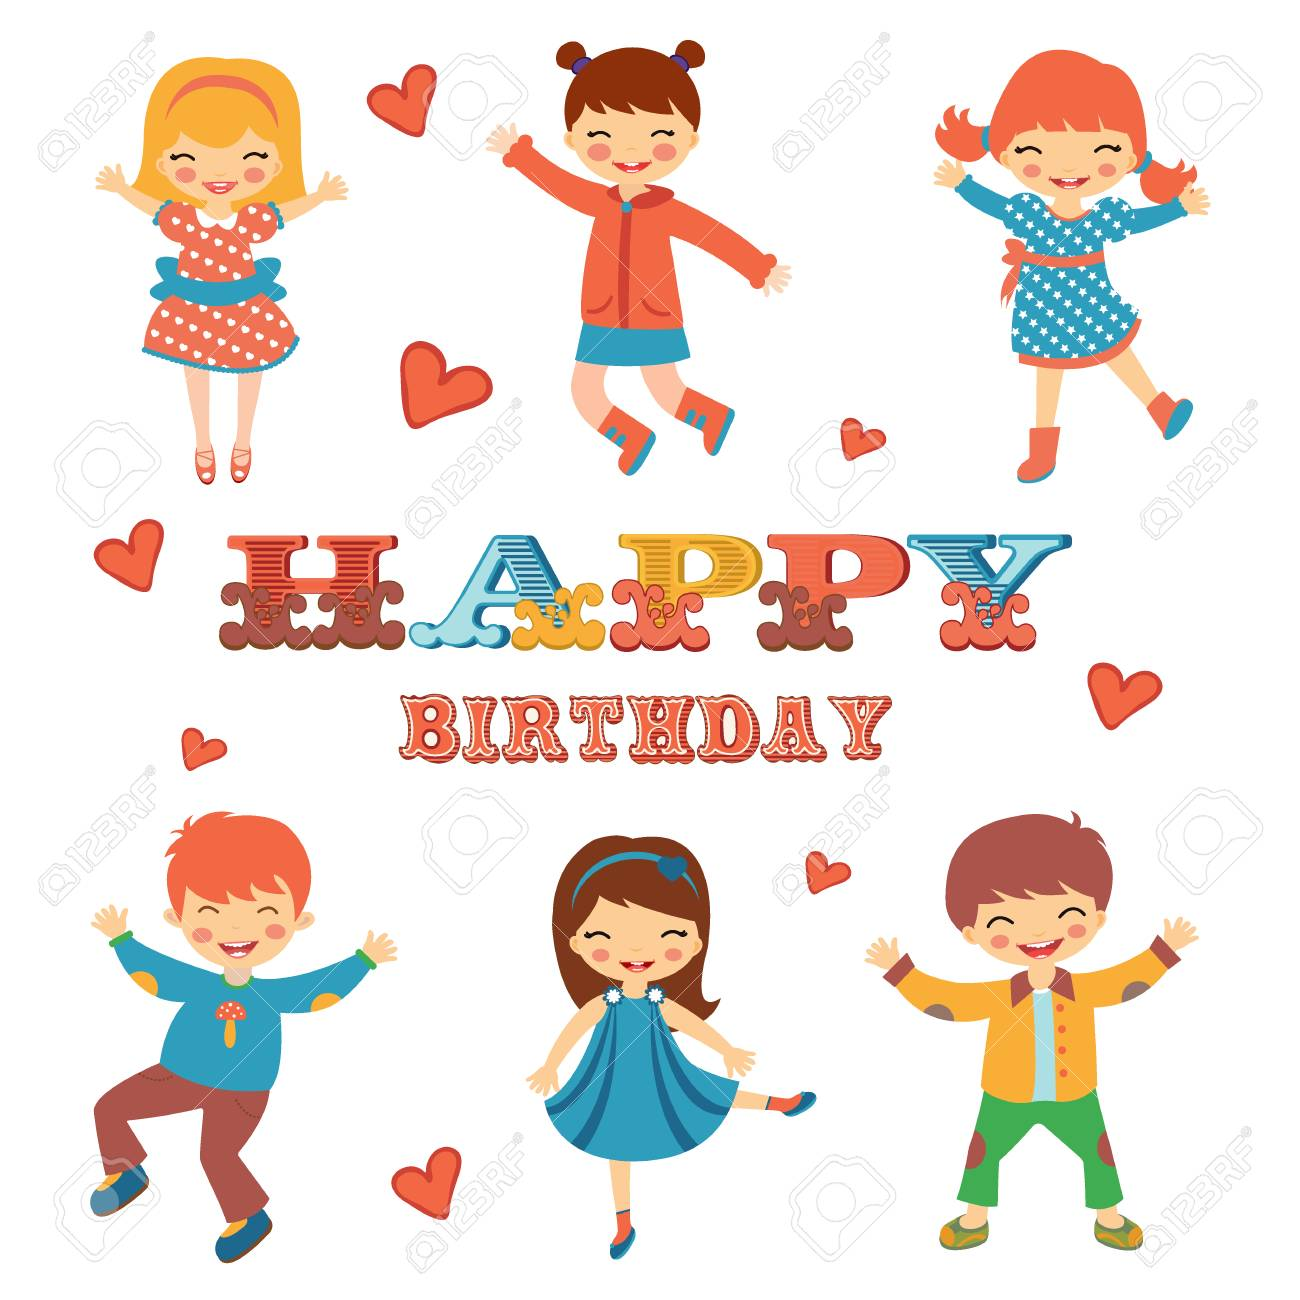 Stylish happy birthday card with cute kids jumping illustration stylish happy birthday card with cute kids jumping illustration in vector format stock vector bookmarktalkfo Choice Image